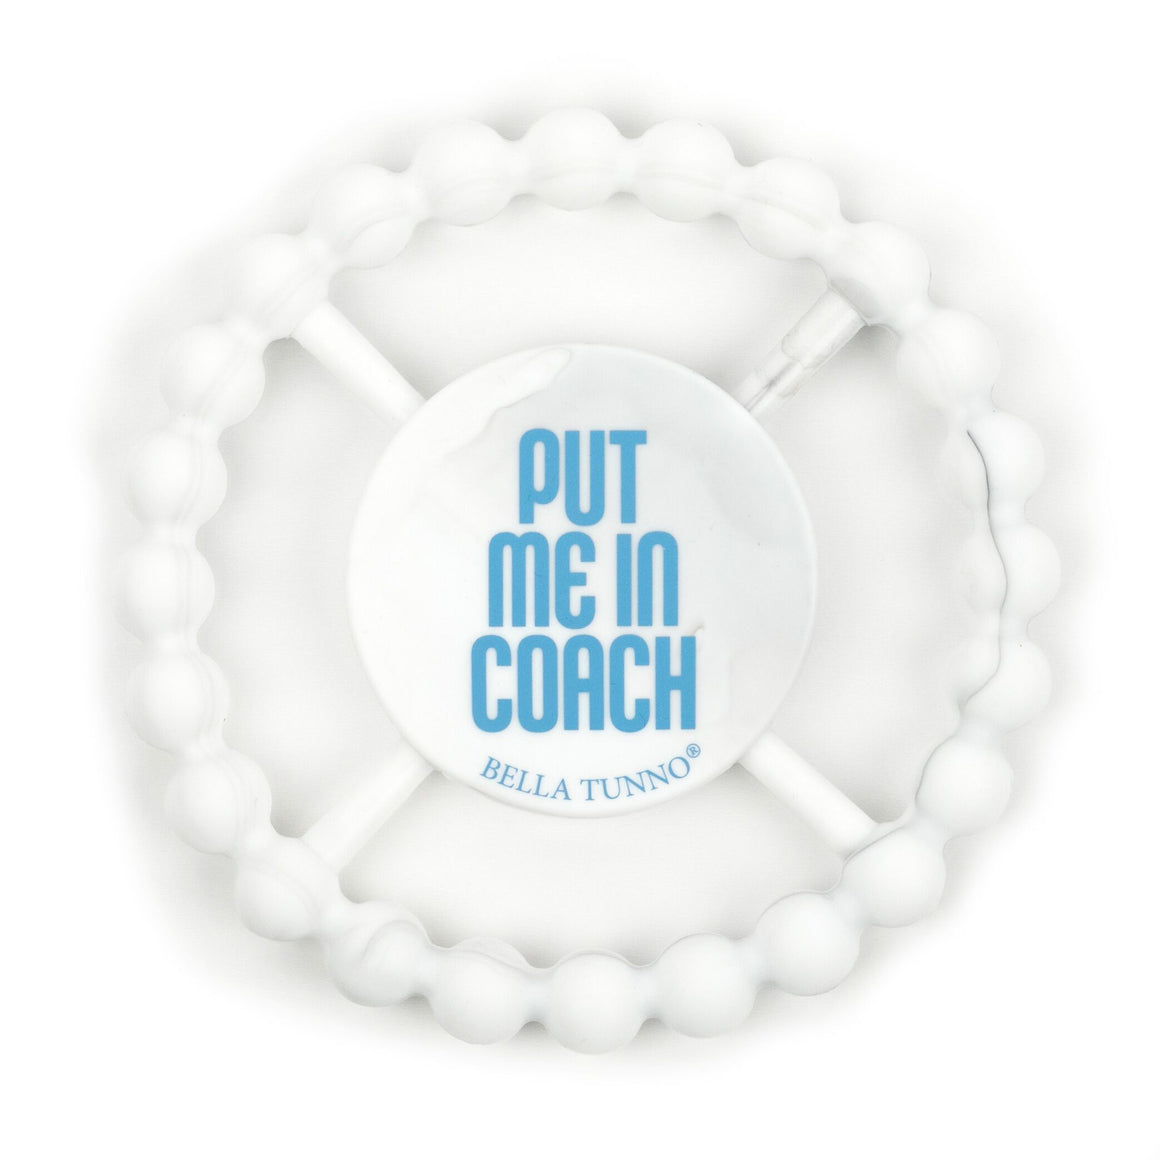 Easy grip 100% FDA Approved Food Grade Silicone Put Me In Coach ball teether marble colored